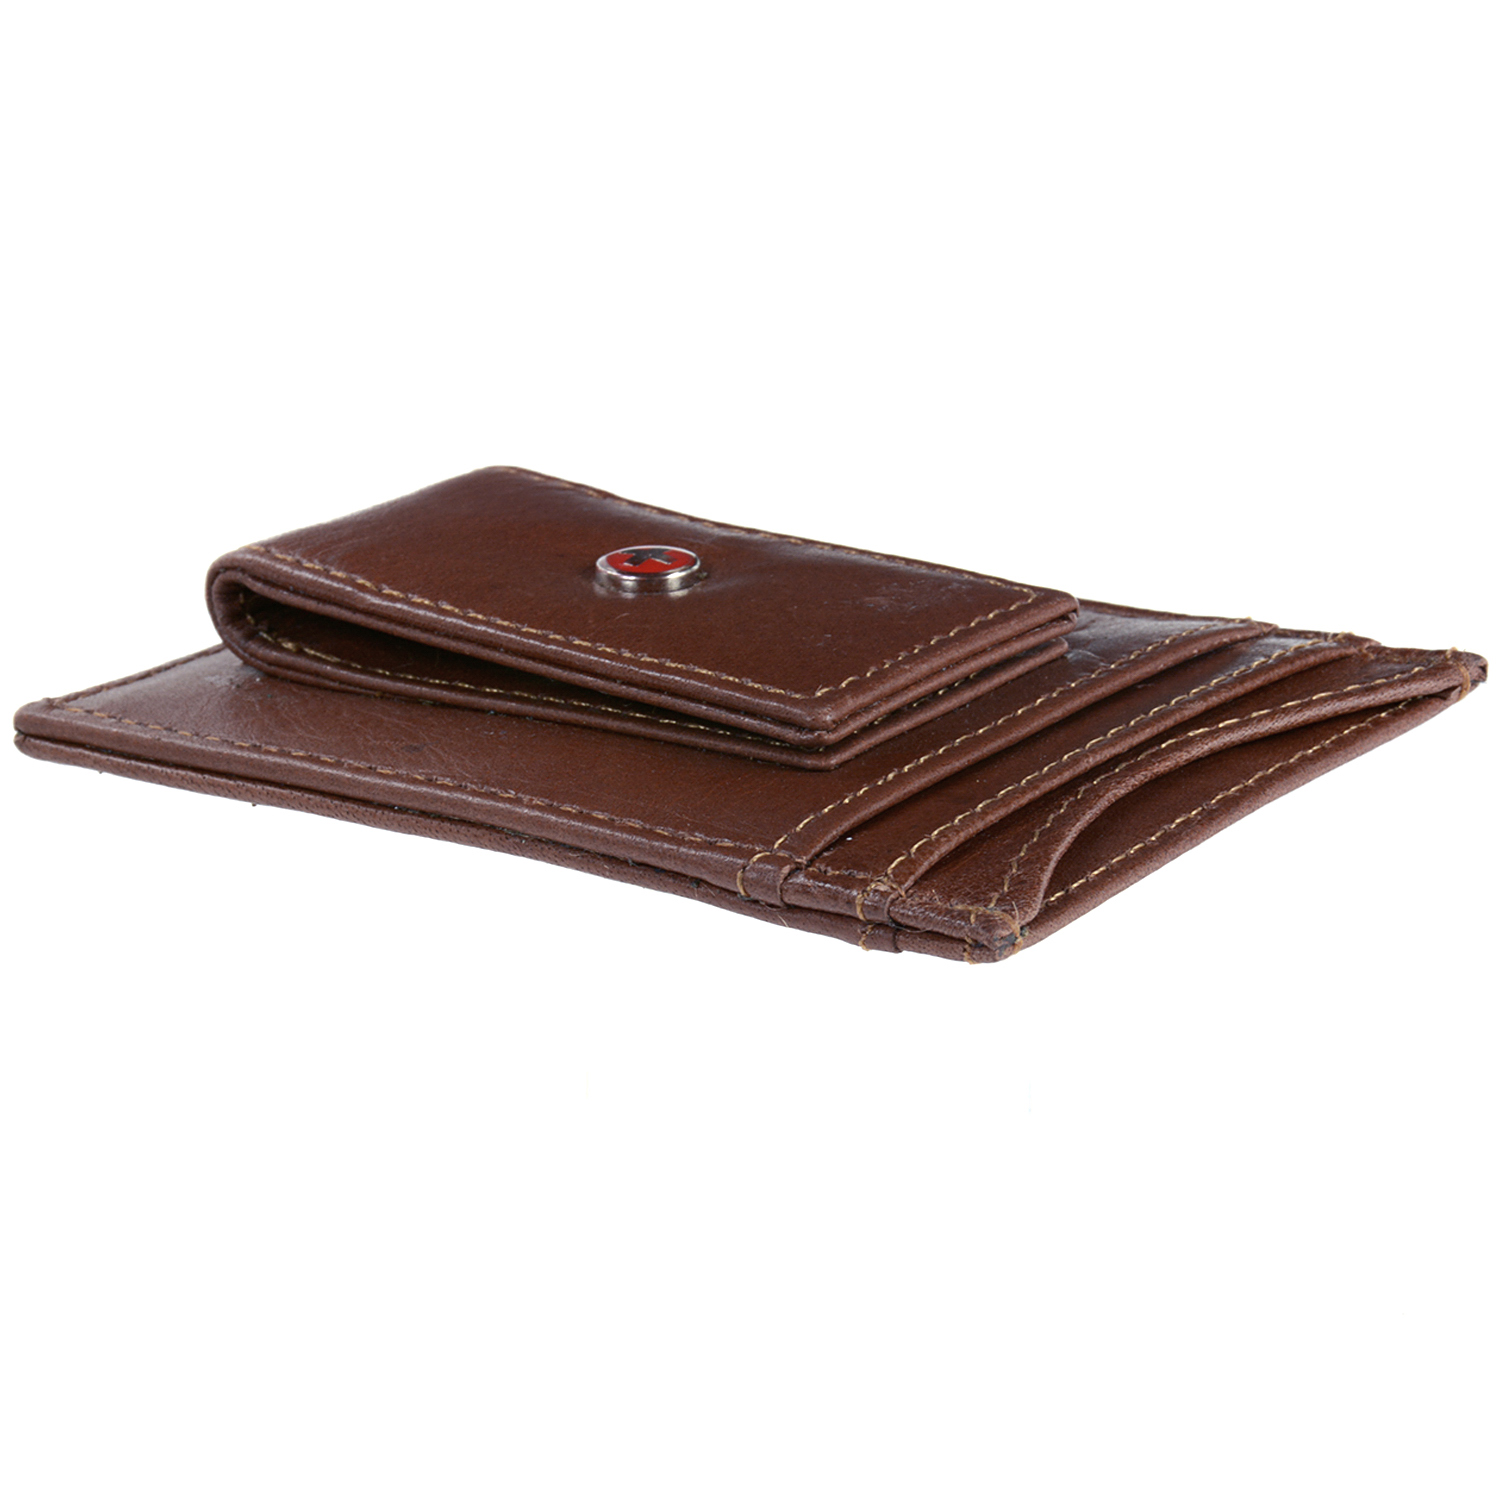 AlpineSwiss-Mens-Leather-Money-Clip-Magnet-Front-Pocket-Wallet-Slim-ID-Card-Case thumbnail 31